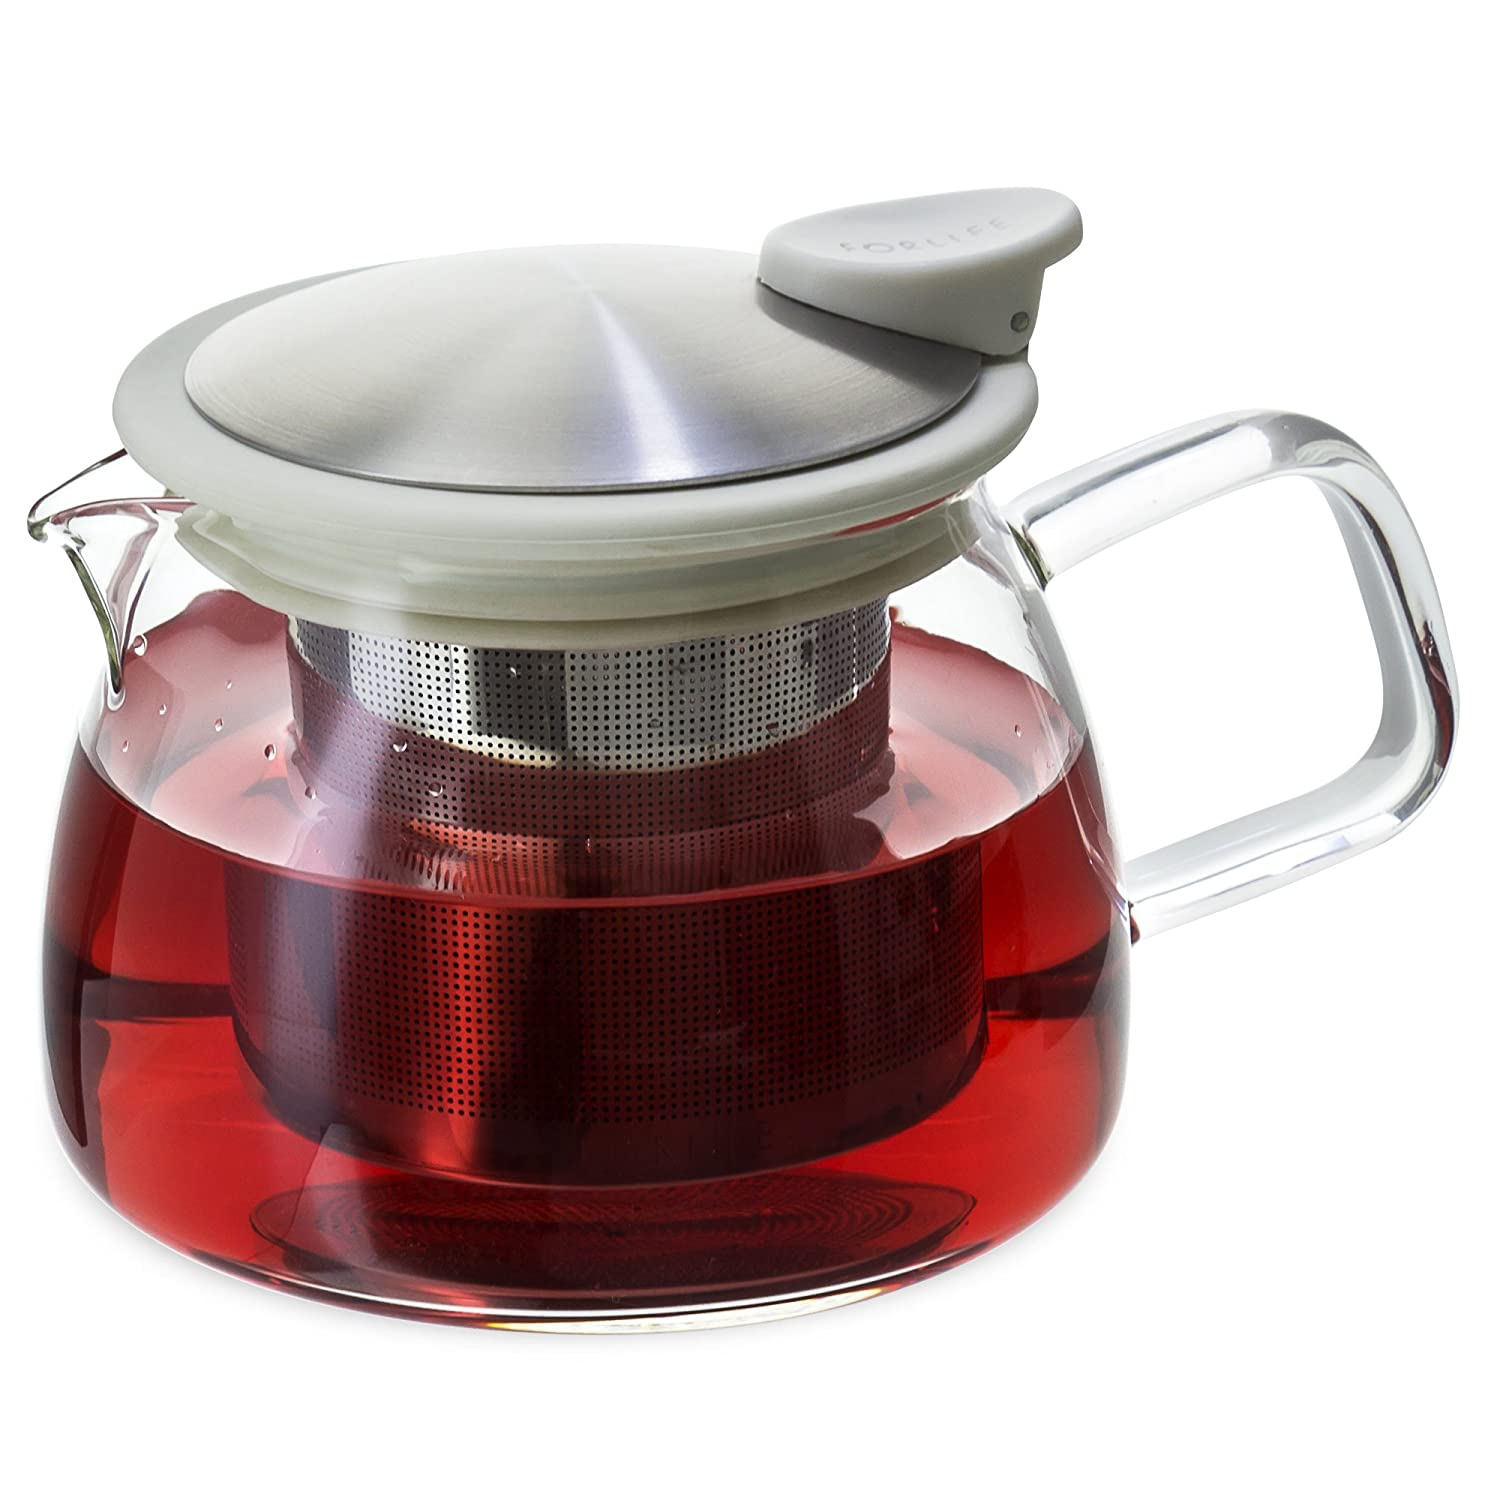 FORLIFE Bell Glass Teapot with Basket Infuser, 14-Ounce/430ml, White 809-WHT